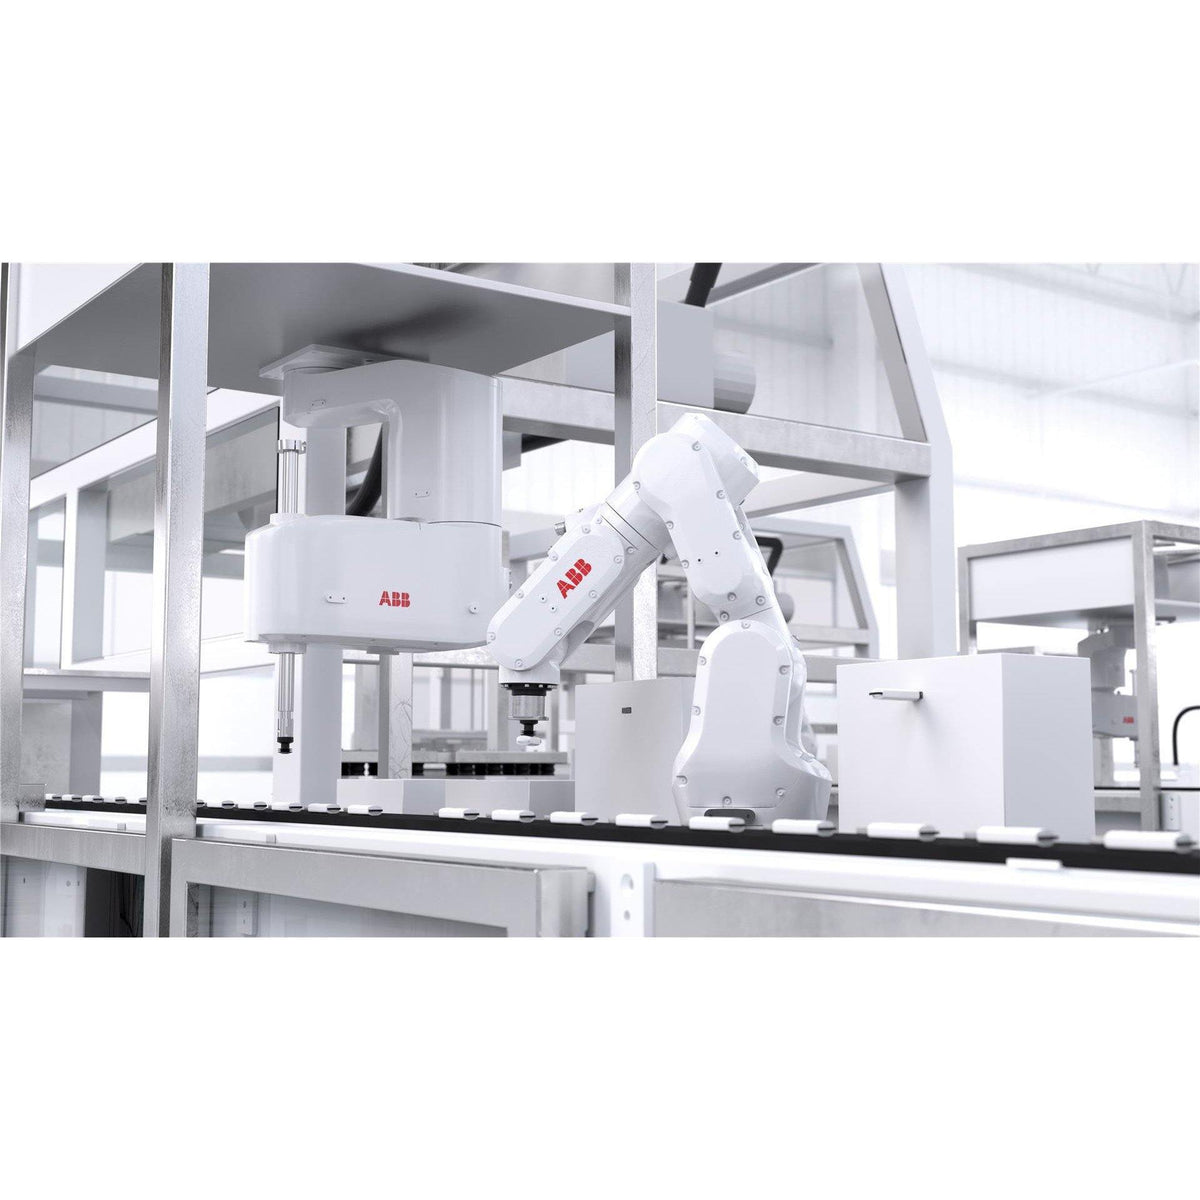 ABB IRB 1100 - The Most Compact and Fast Robot Ever - Pose 4